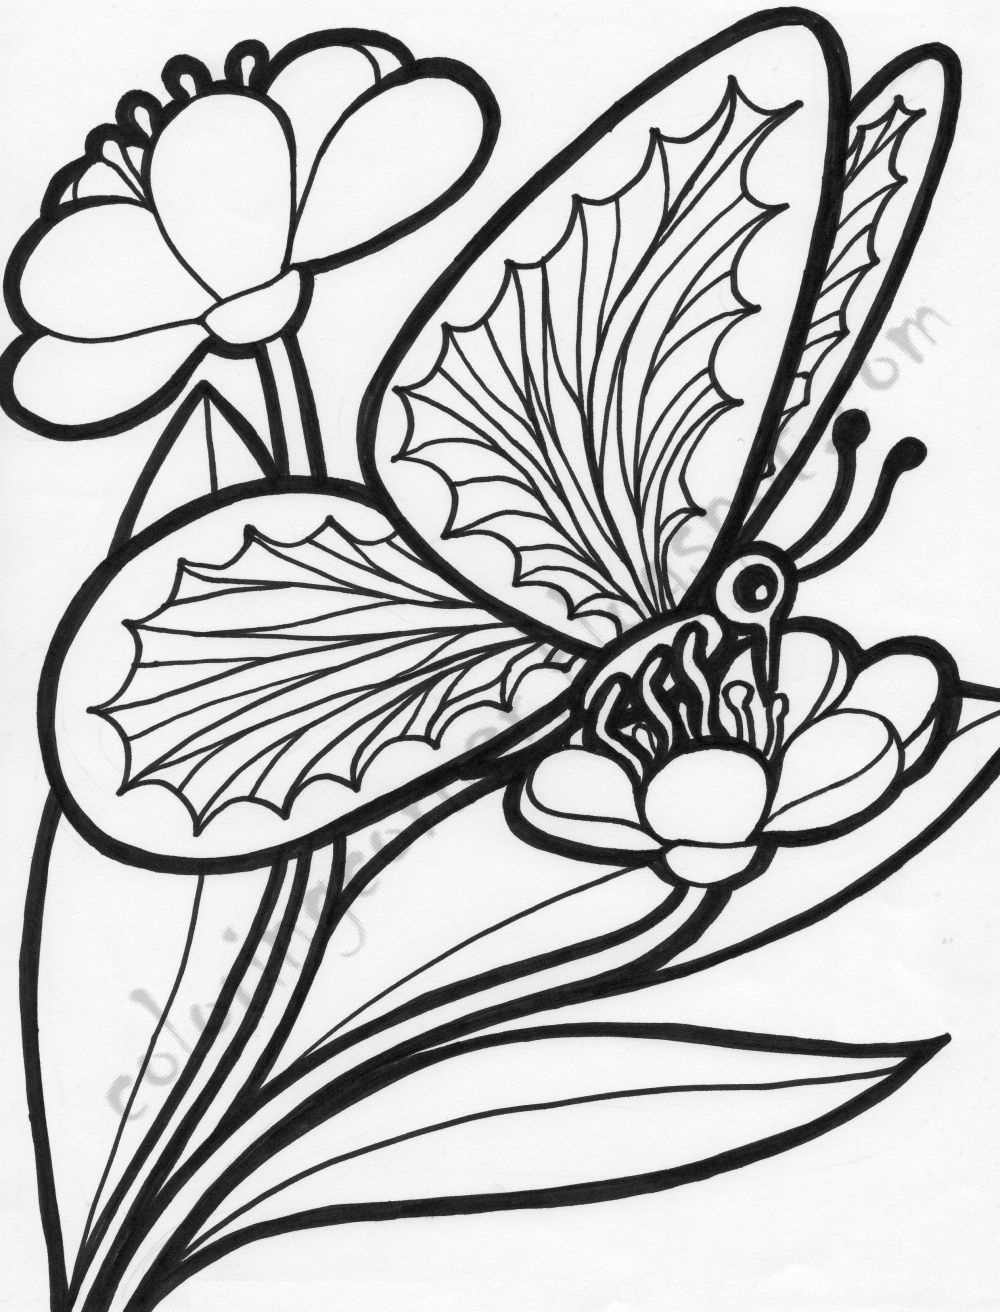 colouring flowers free printable flower coloring pages for kids cool2bkids flowers colouring 1 3